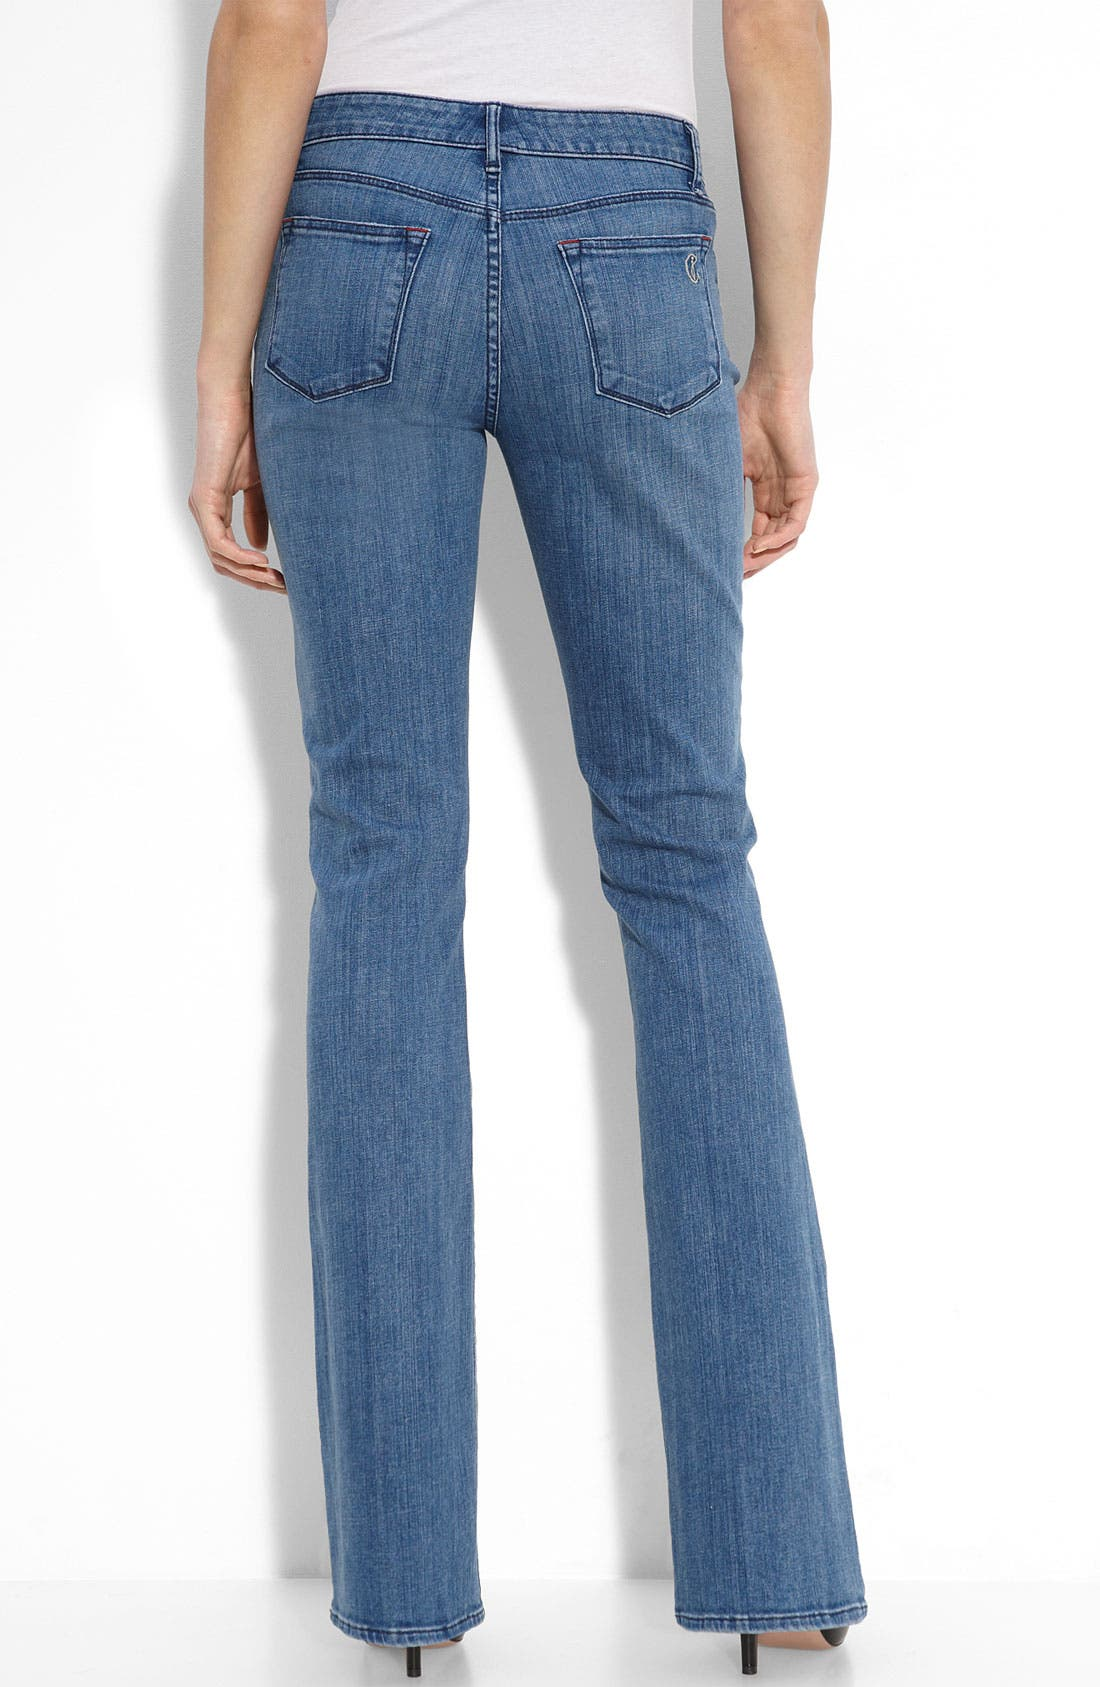 Alternate Image 1 Selected - CJ by Cookie Johnson 'Grace' Bootcut Jeans (Shaol Wash)